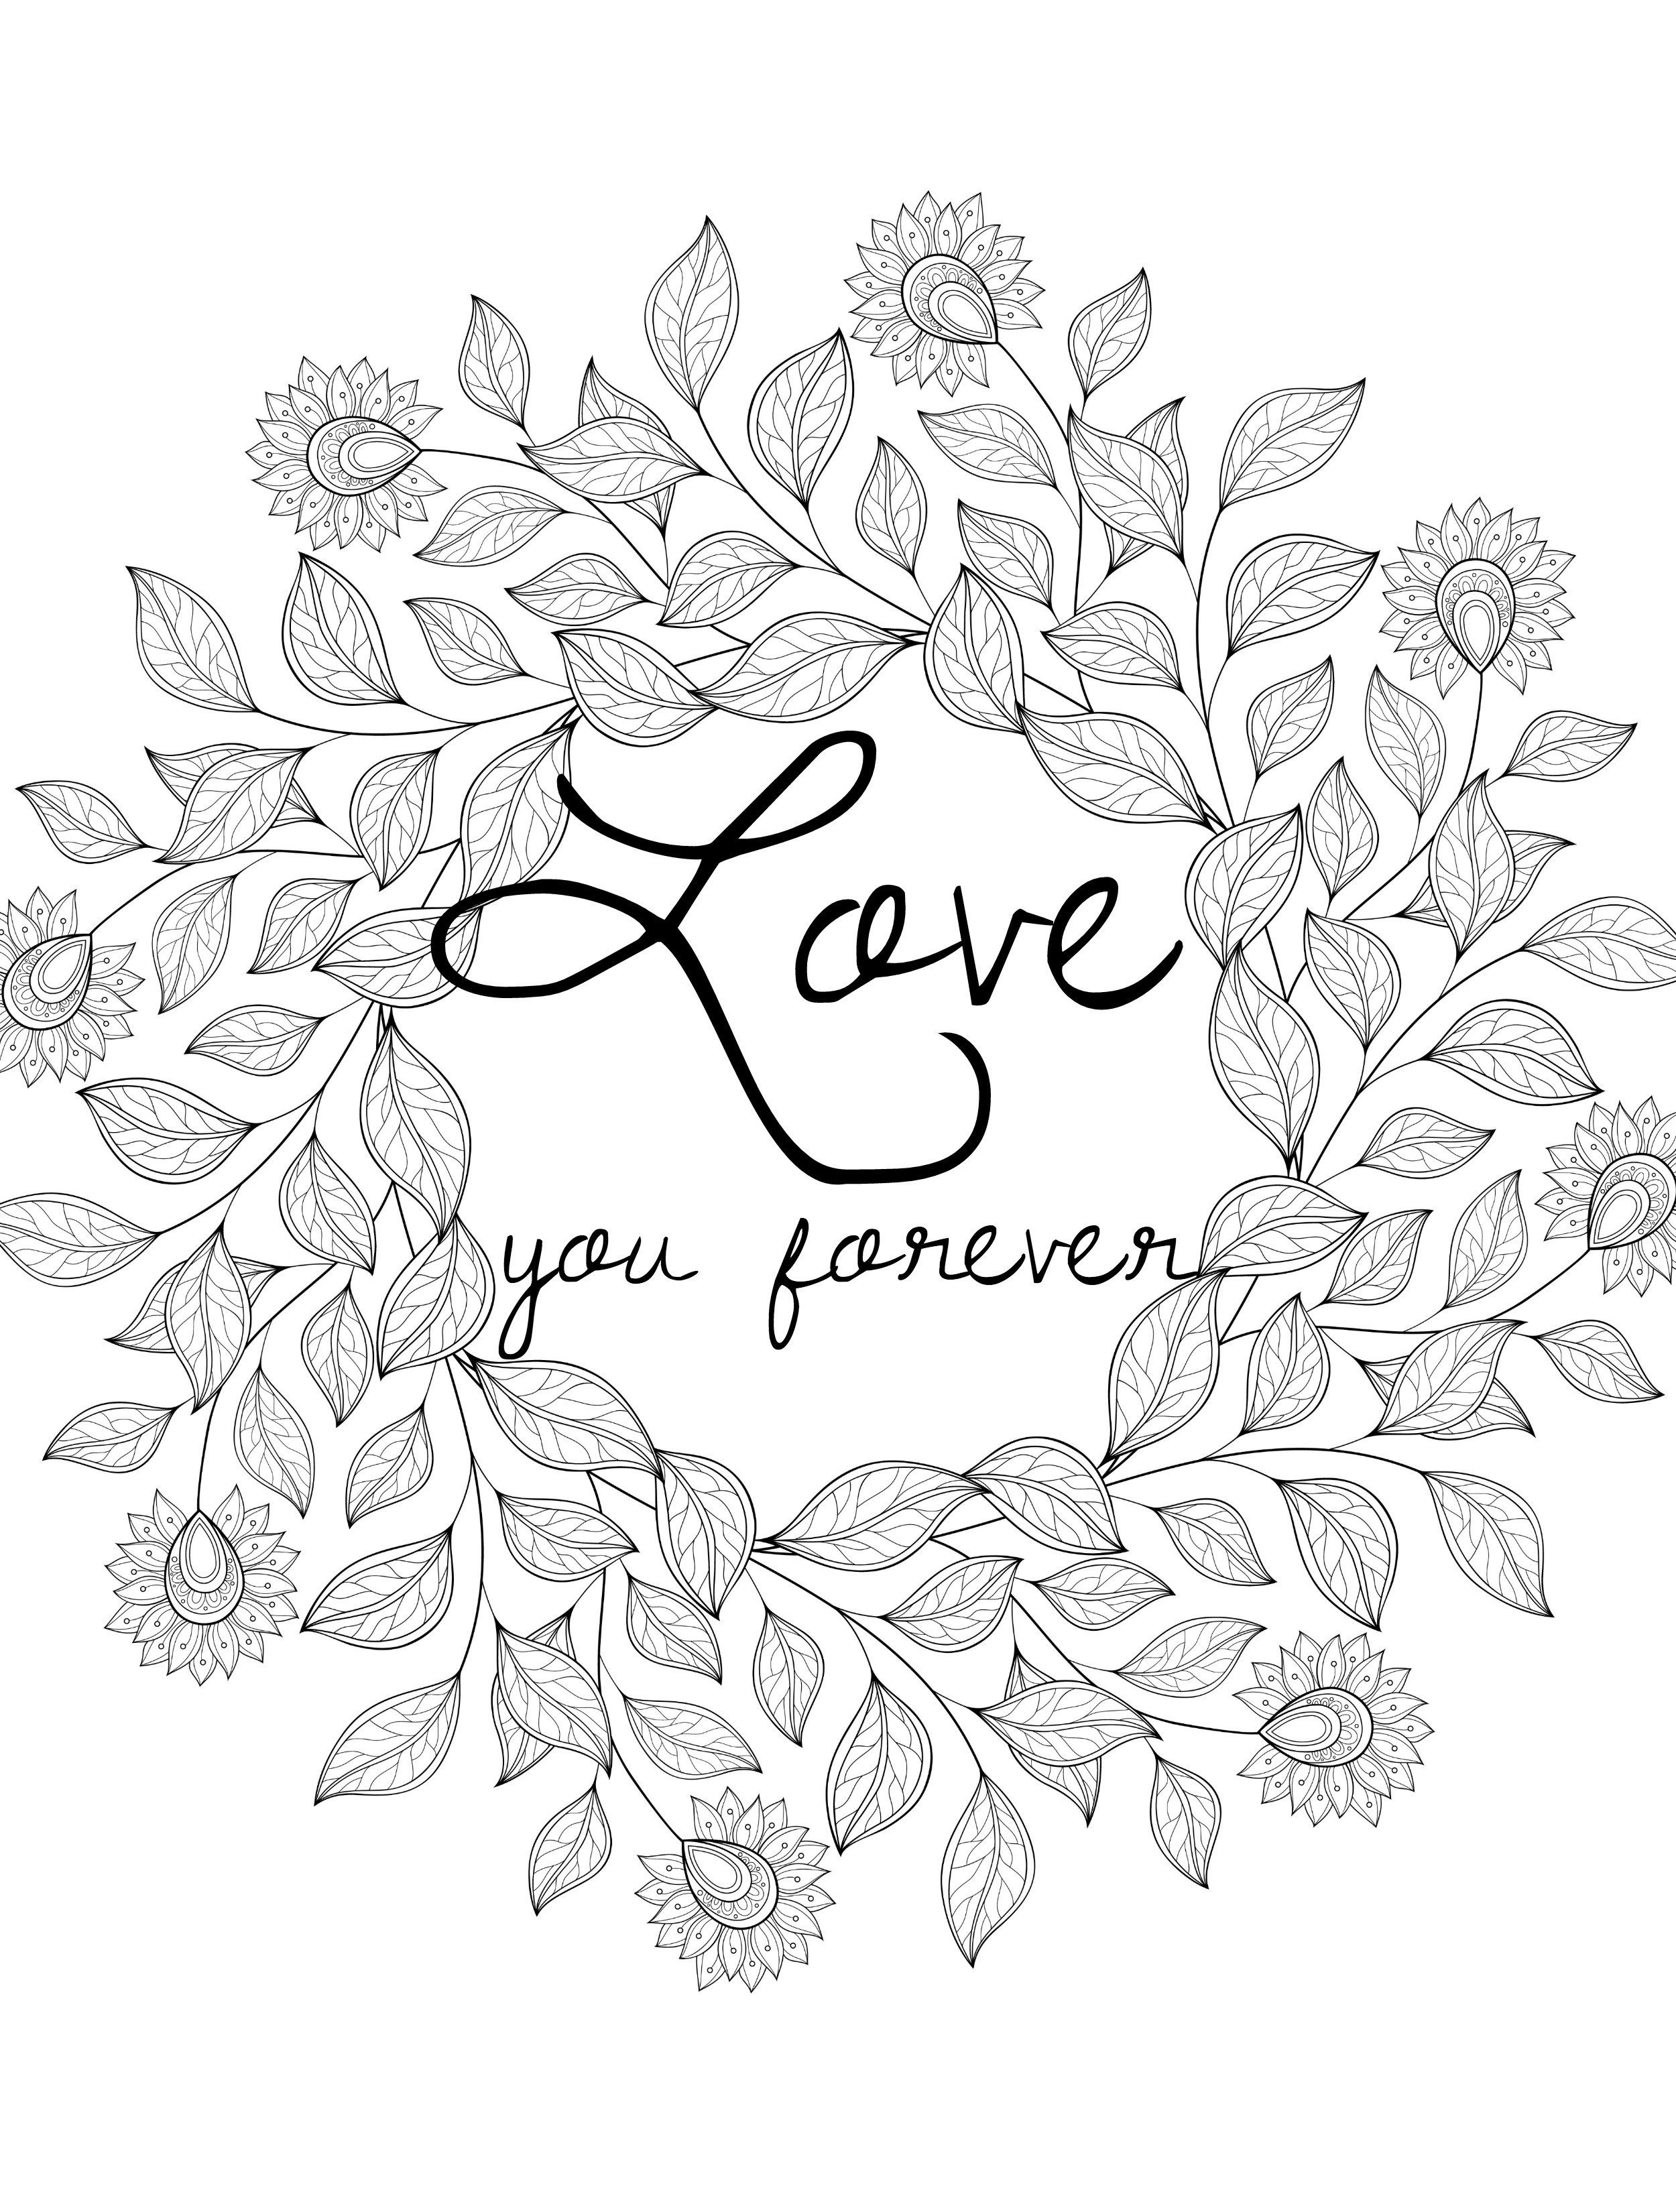 20 free printable valentines coloring pages page 20 of 20